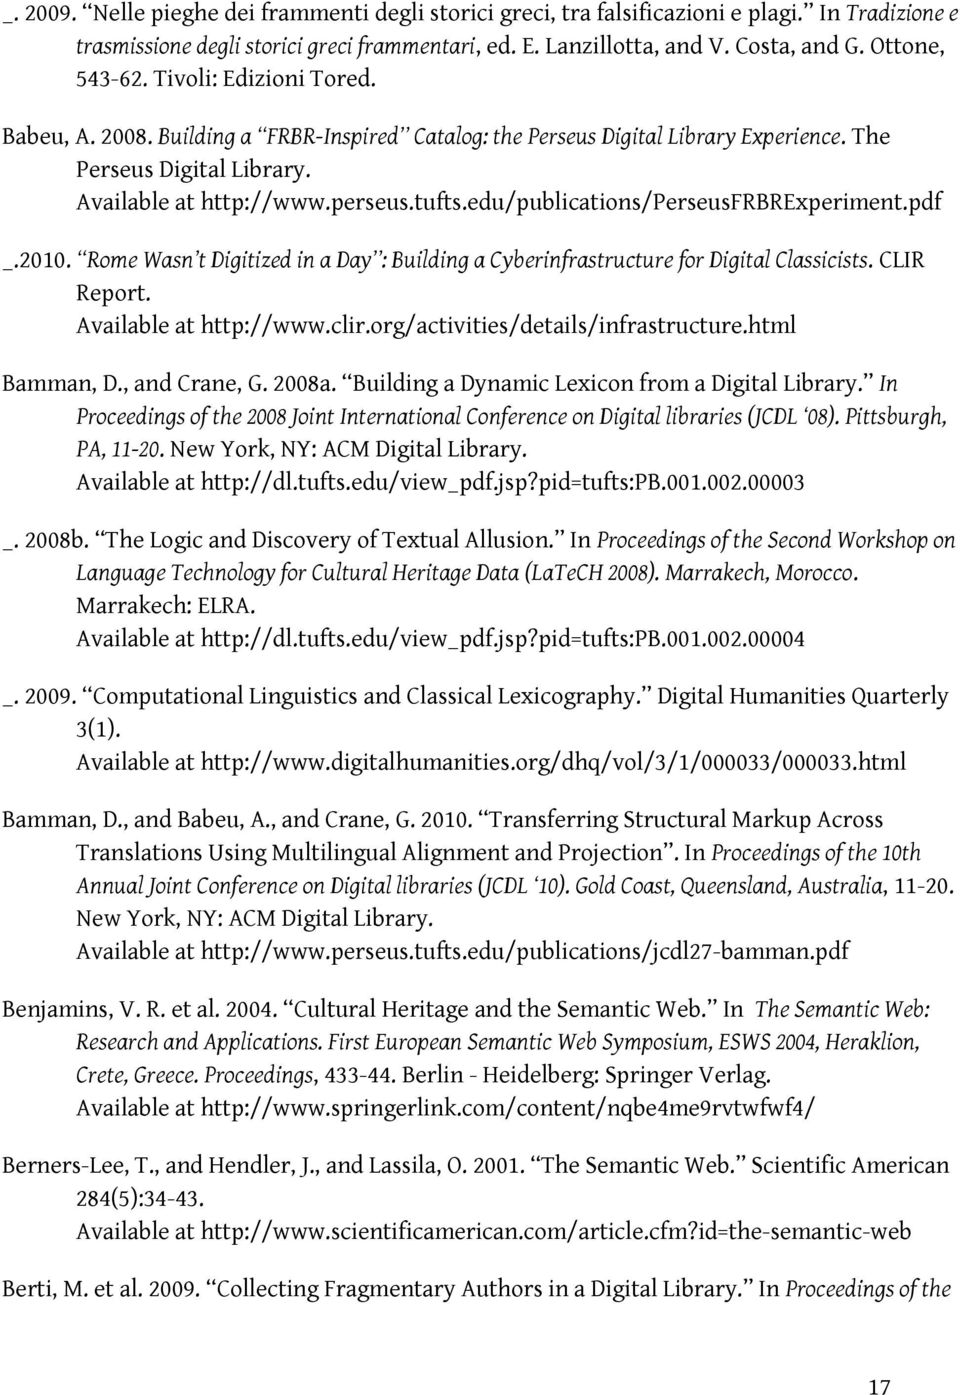 edu/publications/perseusfrbrexperiment.pdf _.2010. Rome Wasn t Digitized in a Day : Building a Cyberinfrastructure for Digital Classicists. CLIR Report. Available at http://www.clir.